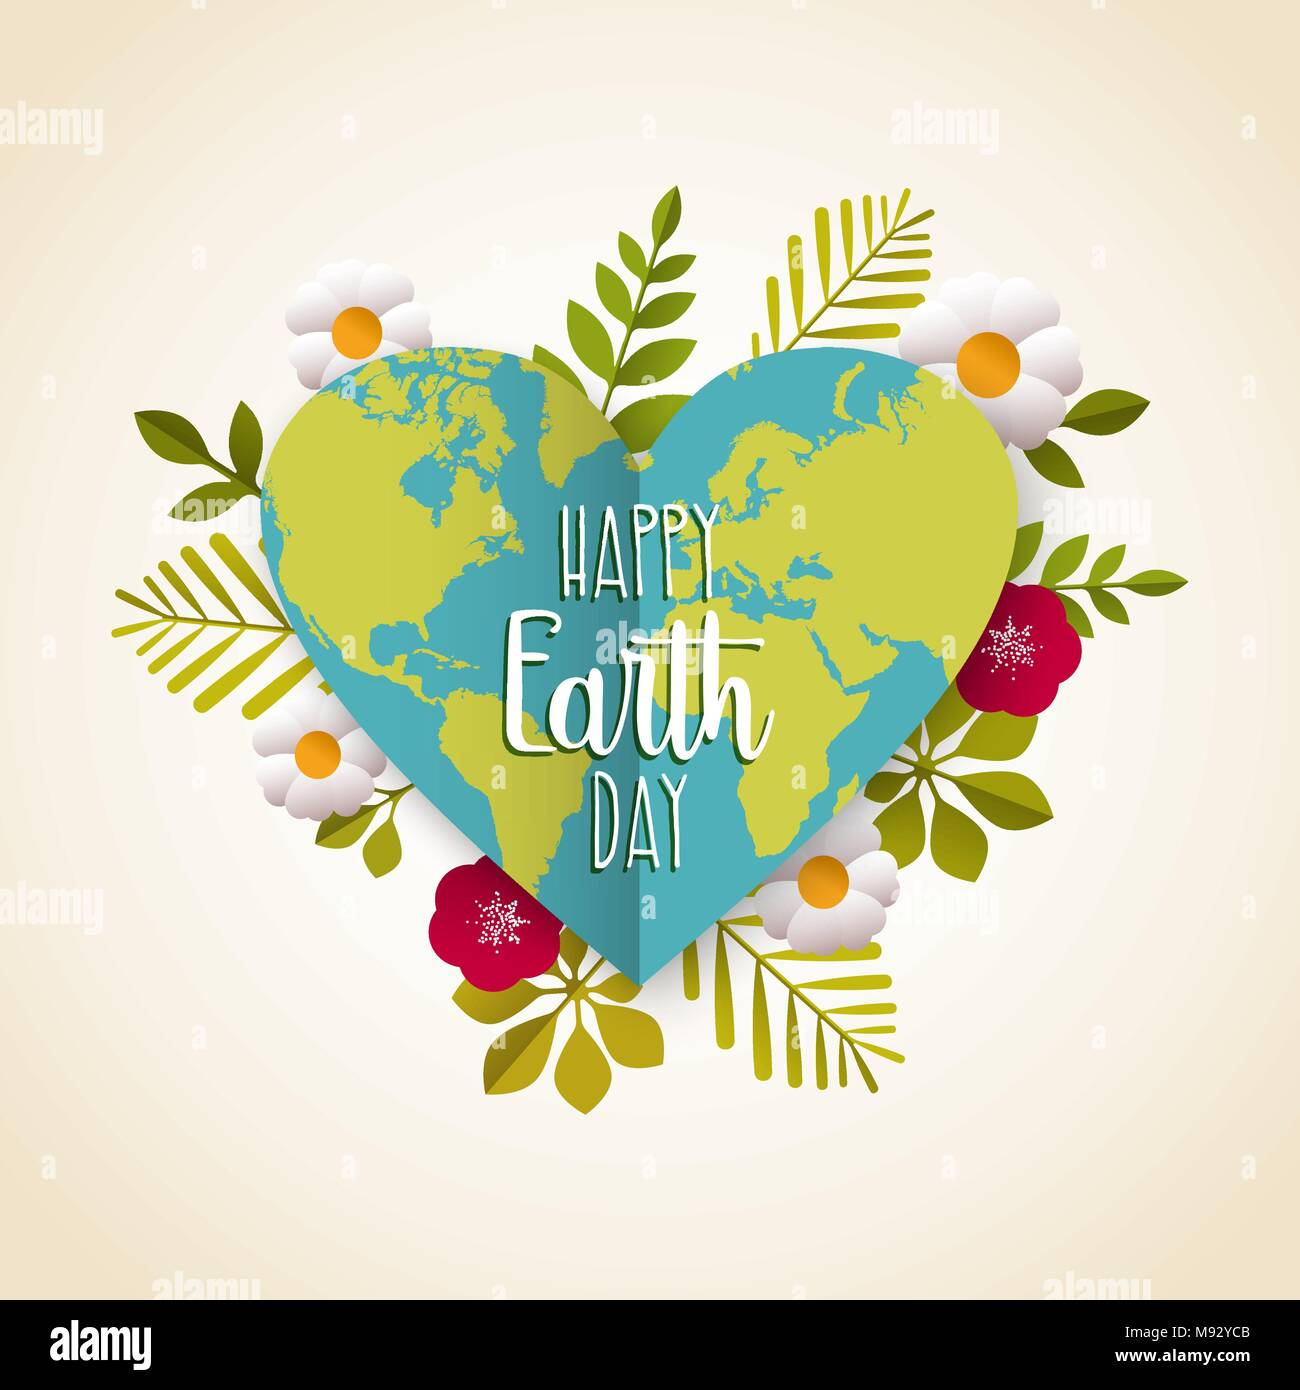 Eco friendly stock vector images alamy happy earth day greeting card of green planet in heart shape with leaves flowers and kristyandbryce Images